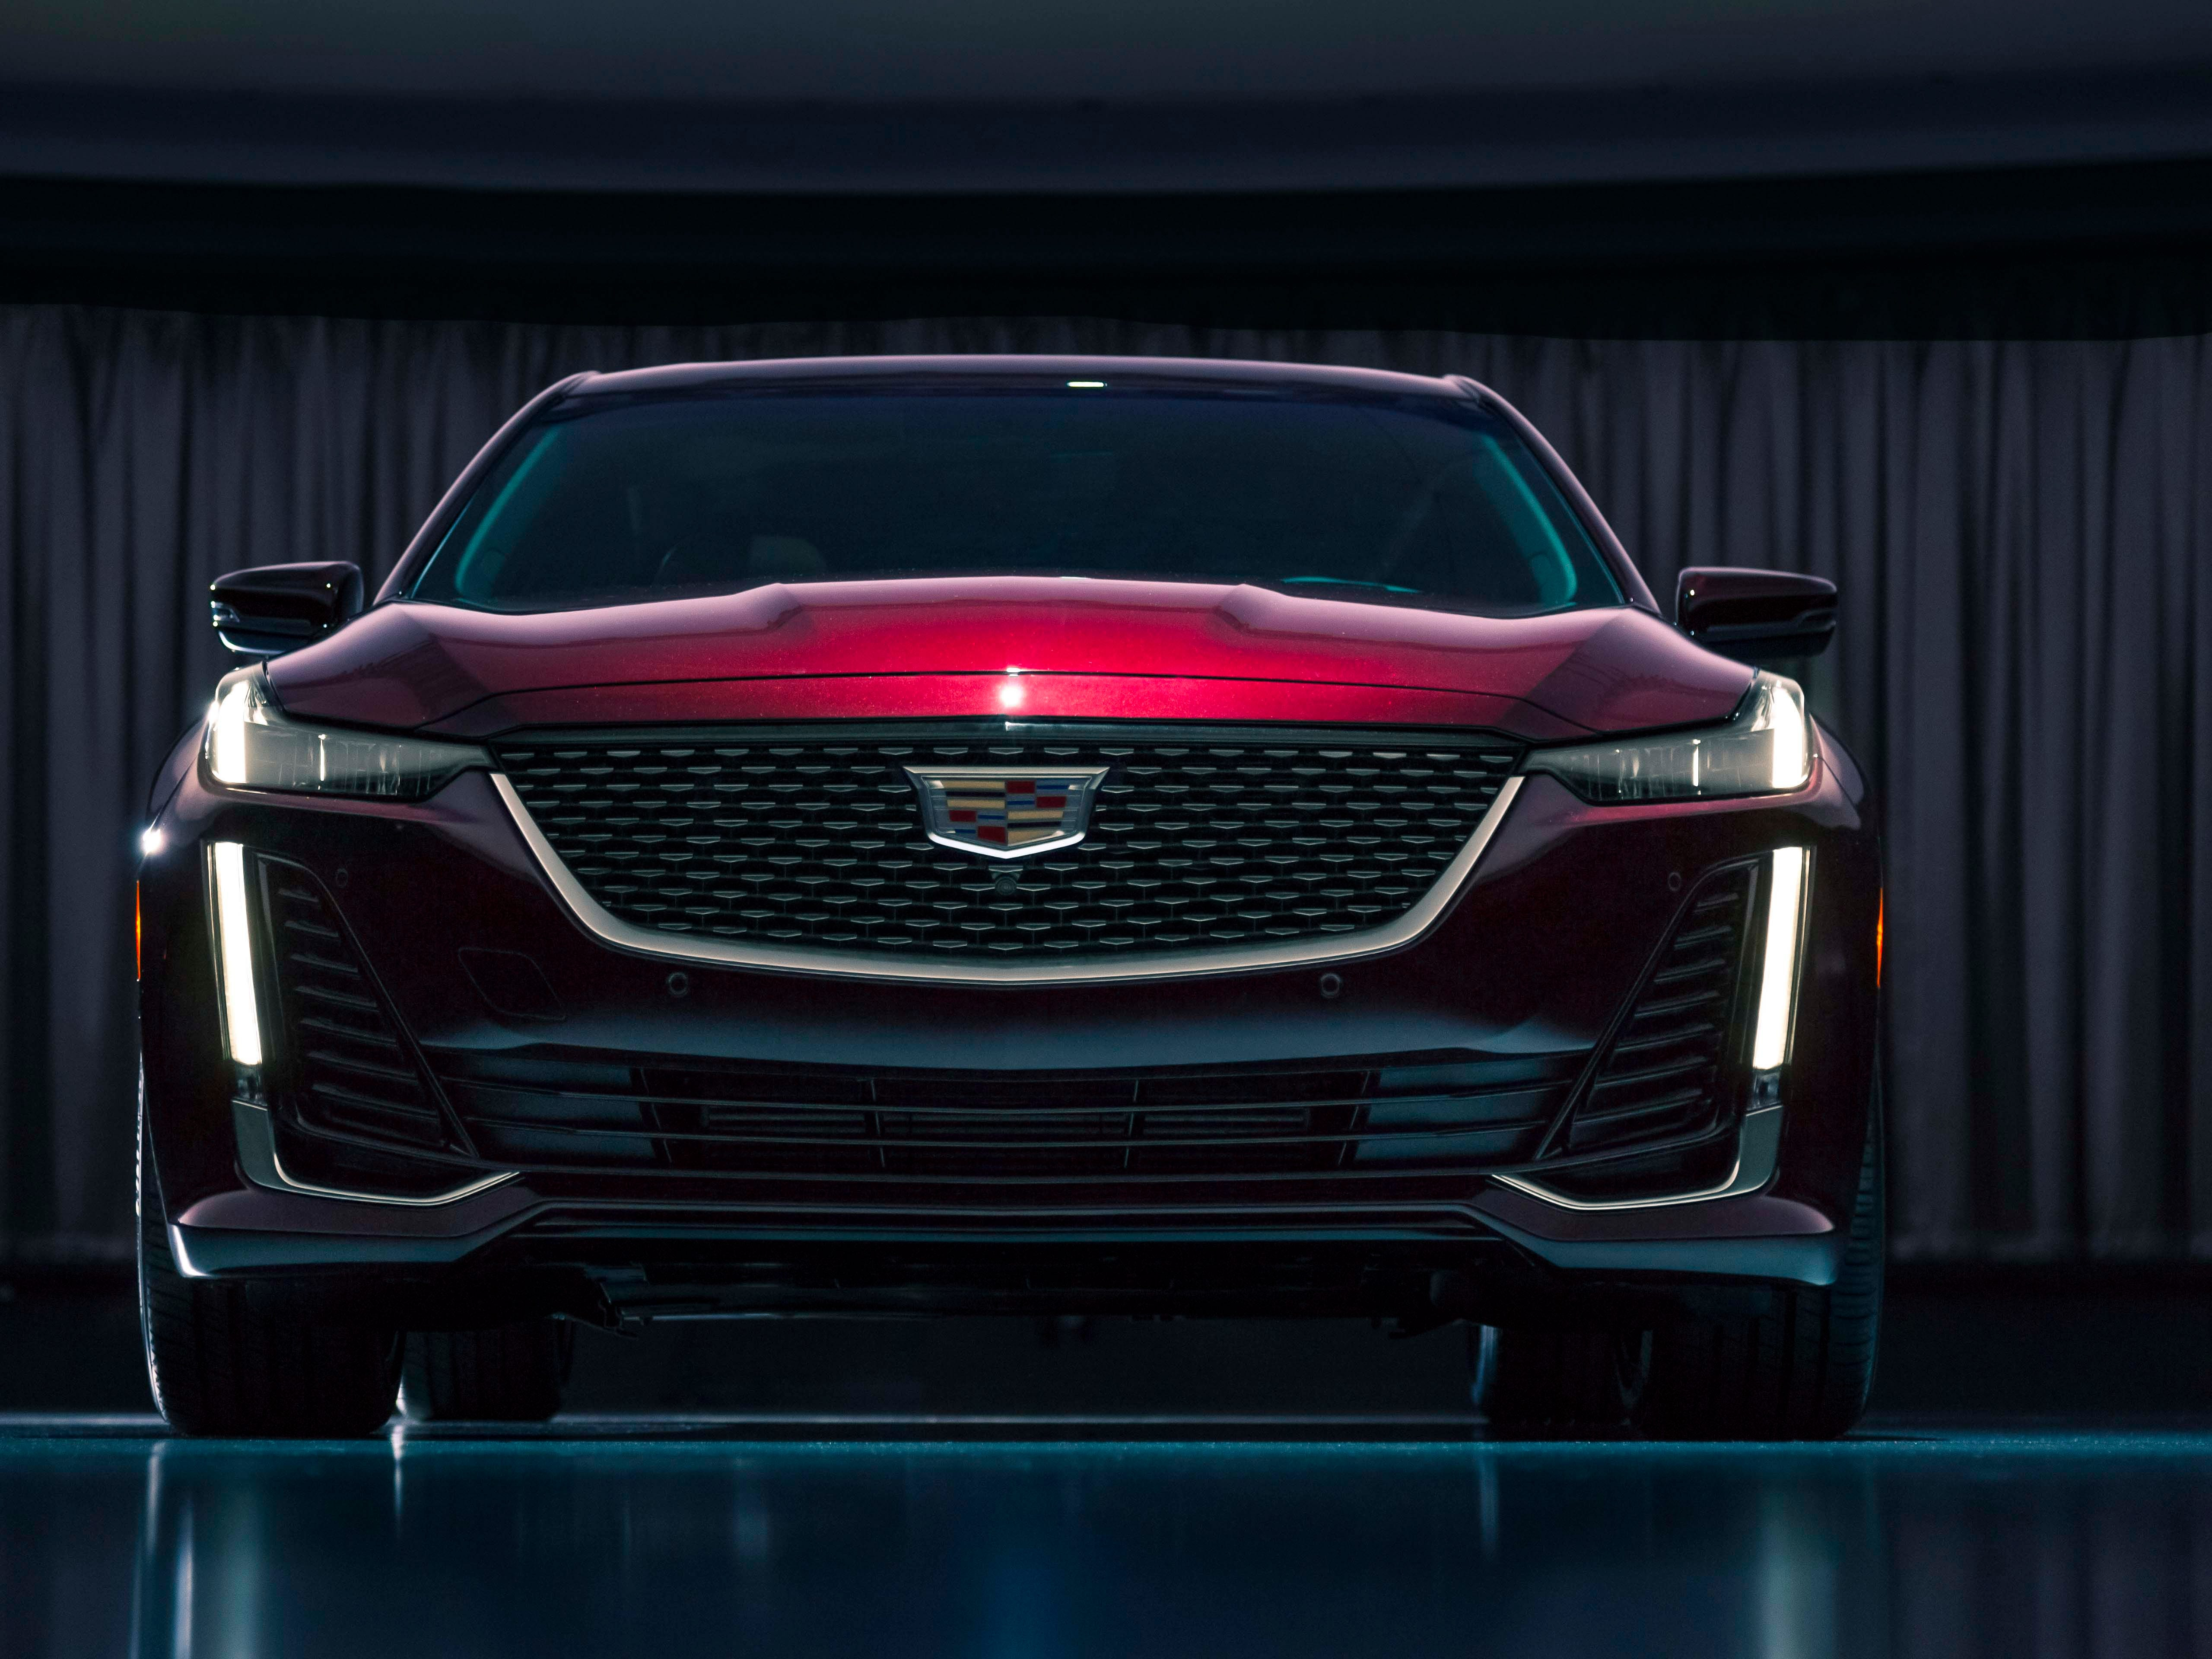 The 2020 Cadillac CT5 takes its design cues from the Escala concept - including an integration of grille and thin headlights.